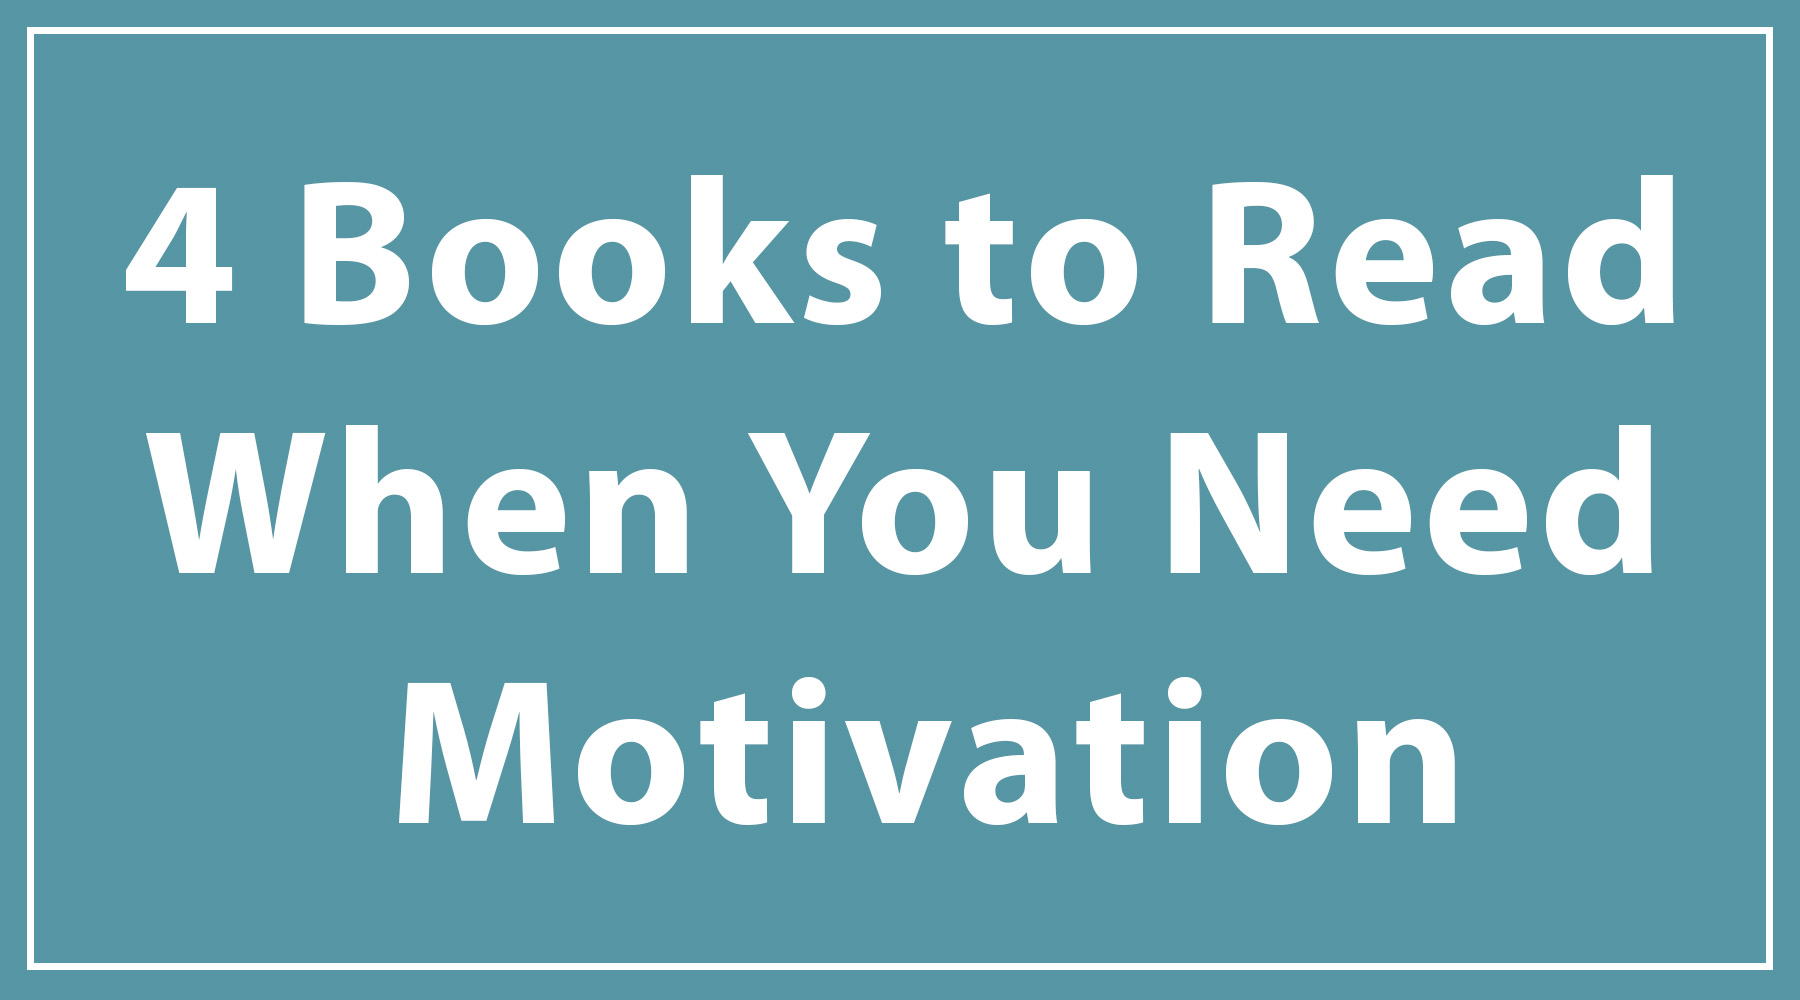 4 Books to Read When You Need Motivation